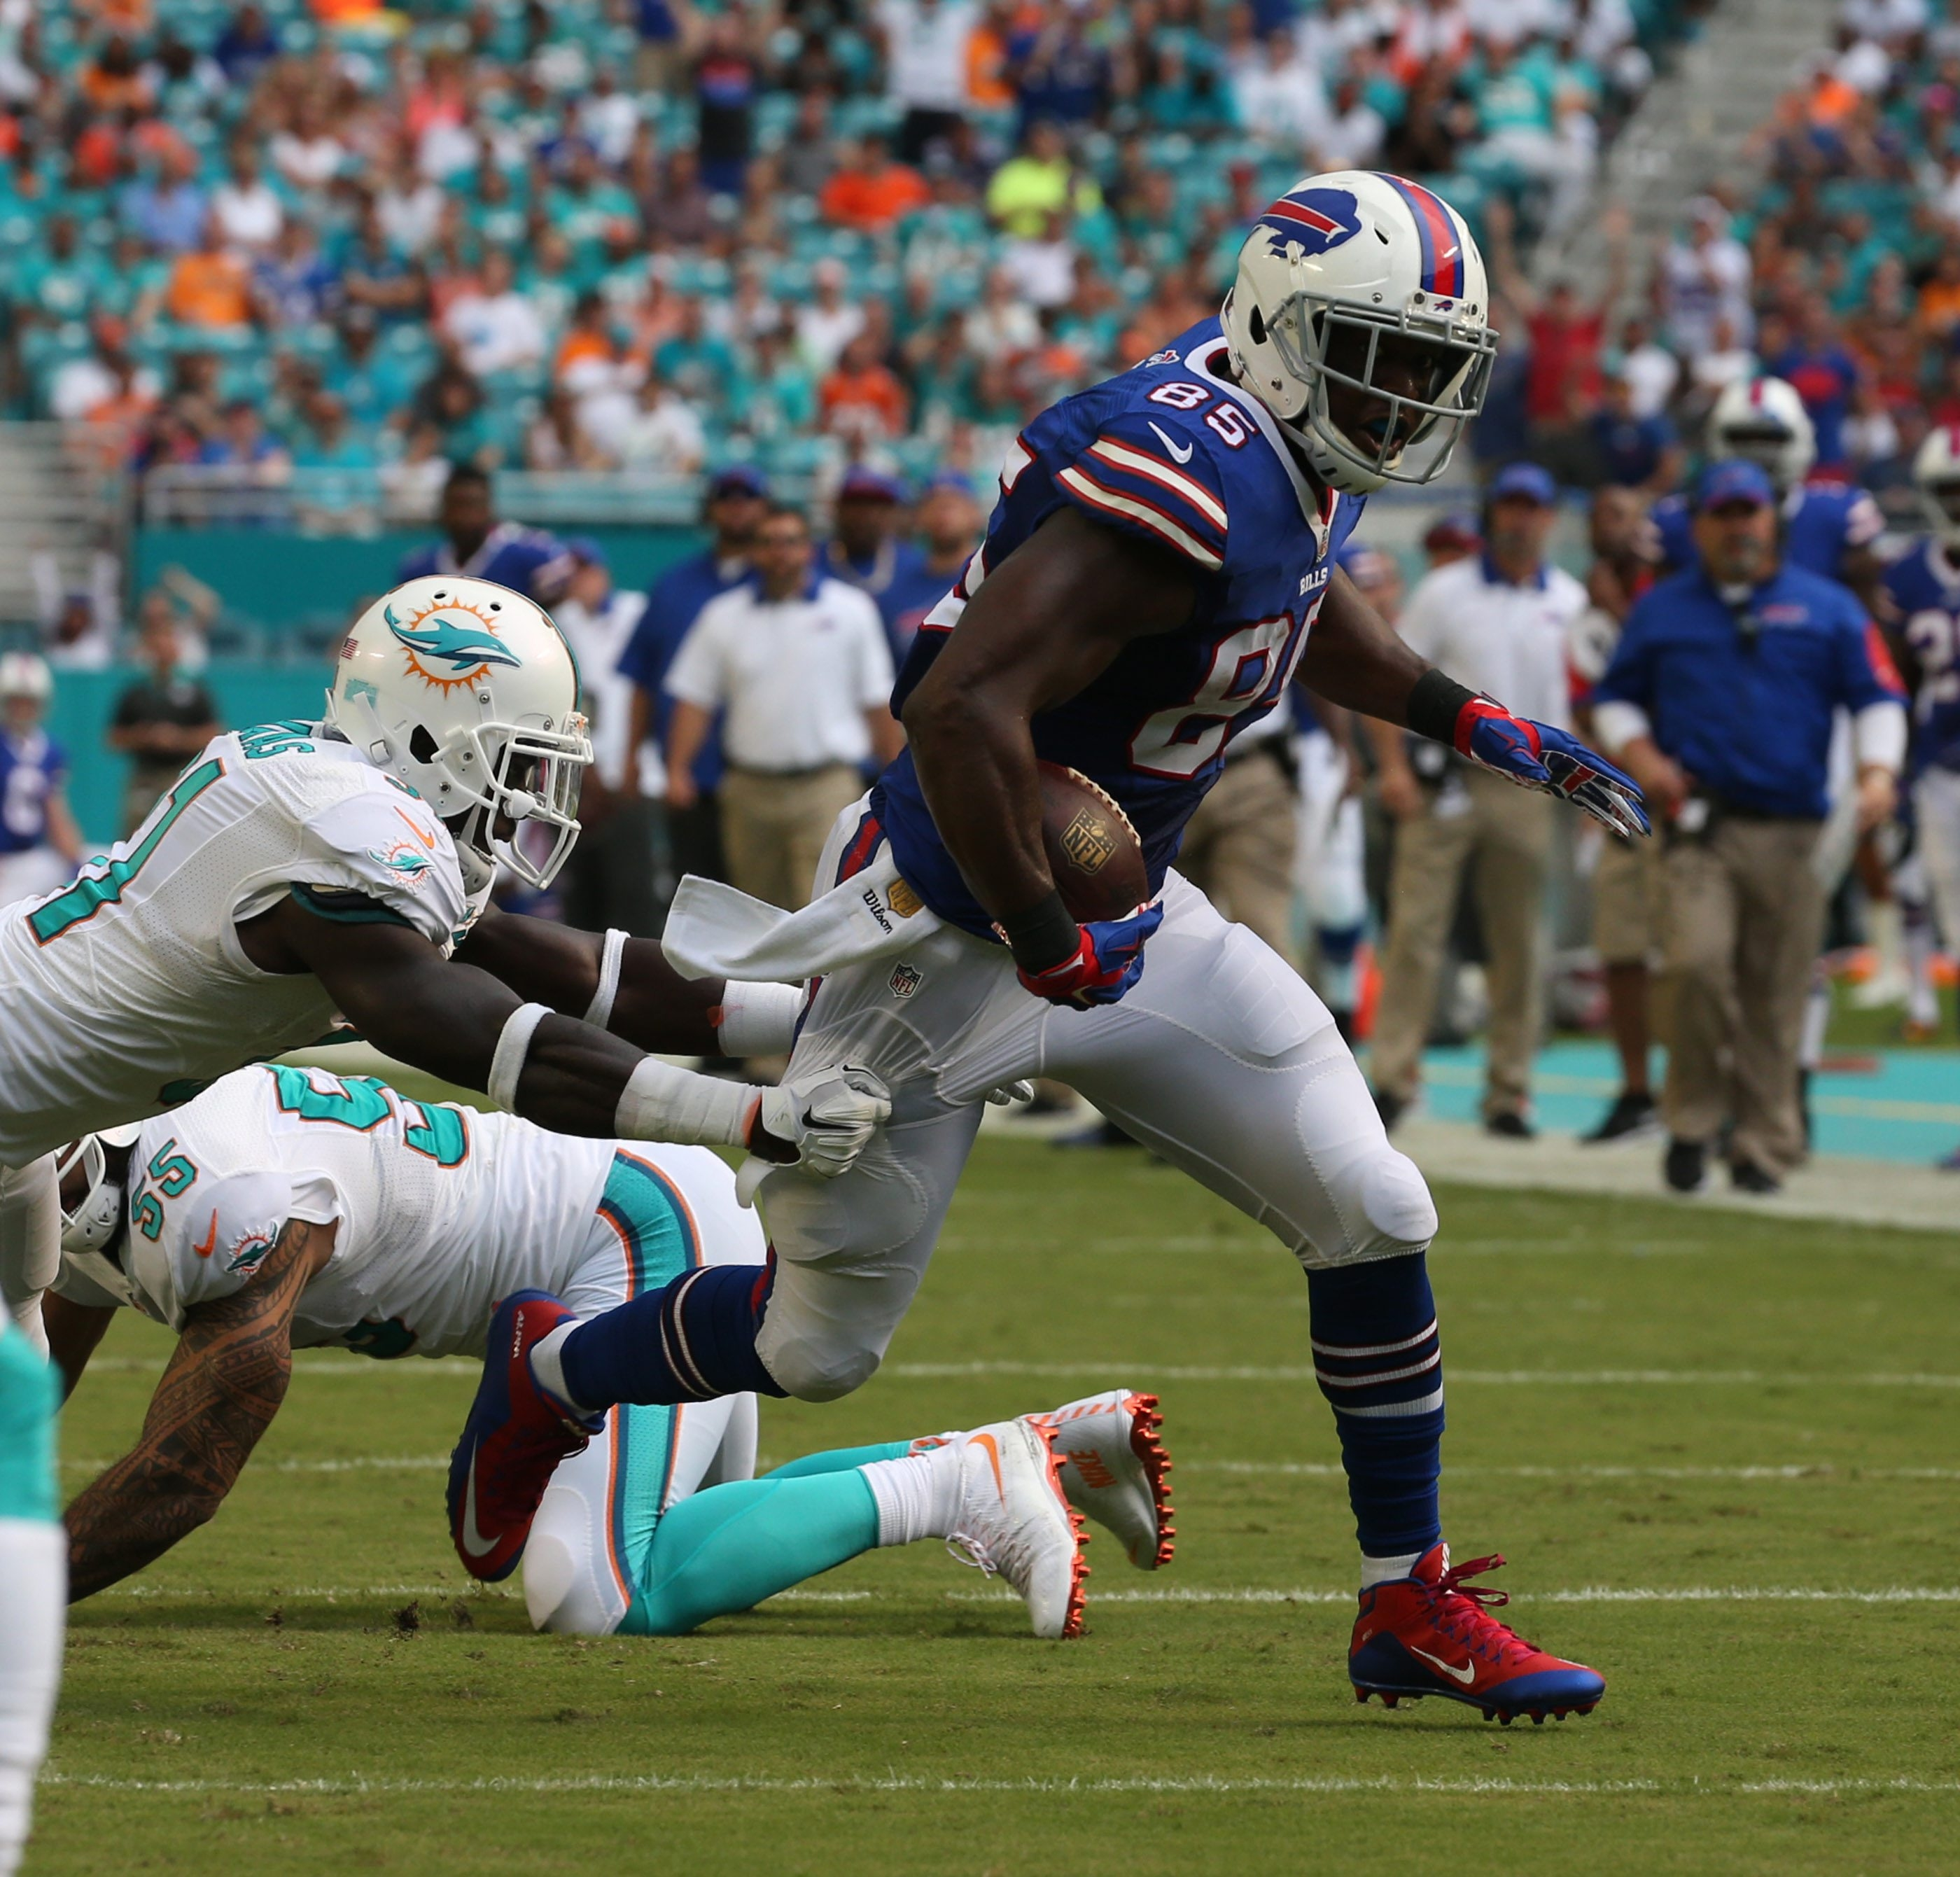 Bills tight end Charles Clay made his presence felt against his former team, scoring Buffalo's first touchdown on a 25-yard catch and run play.